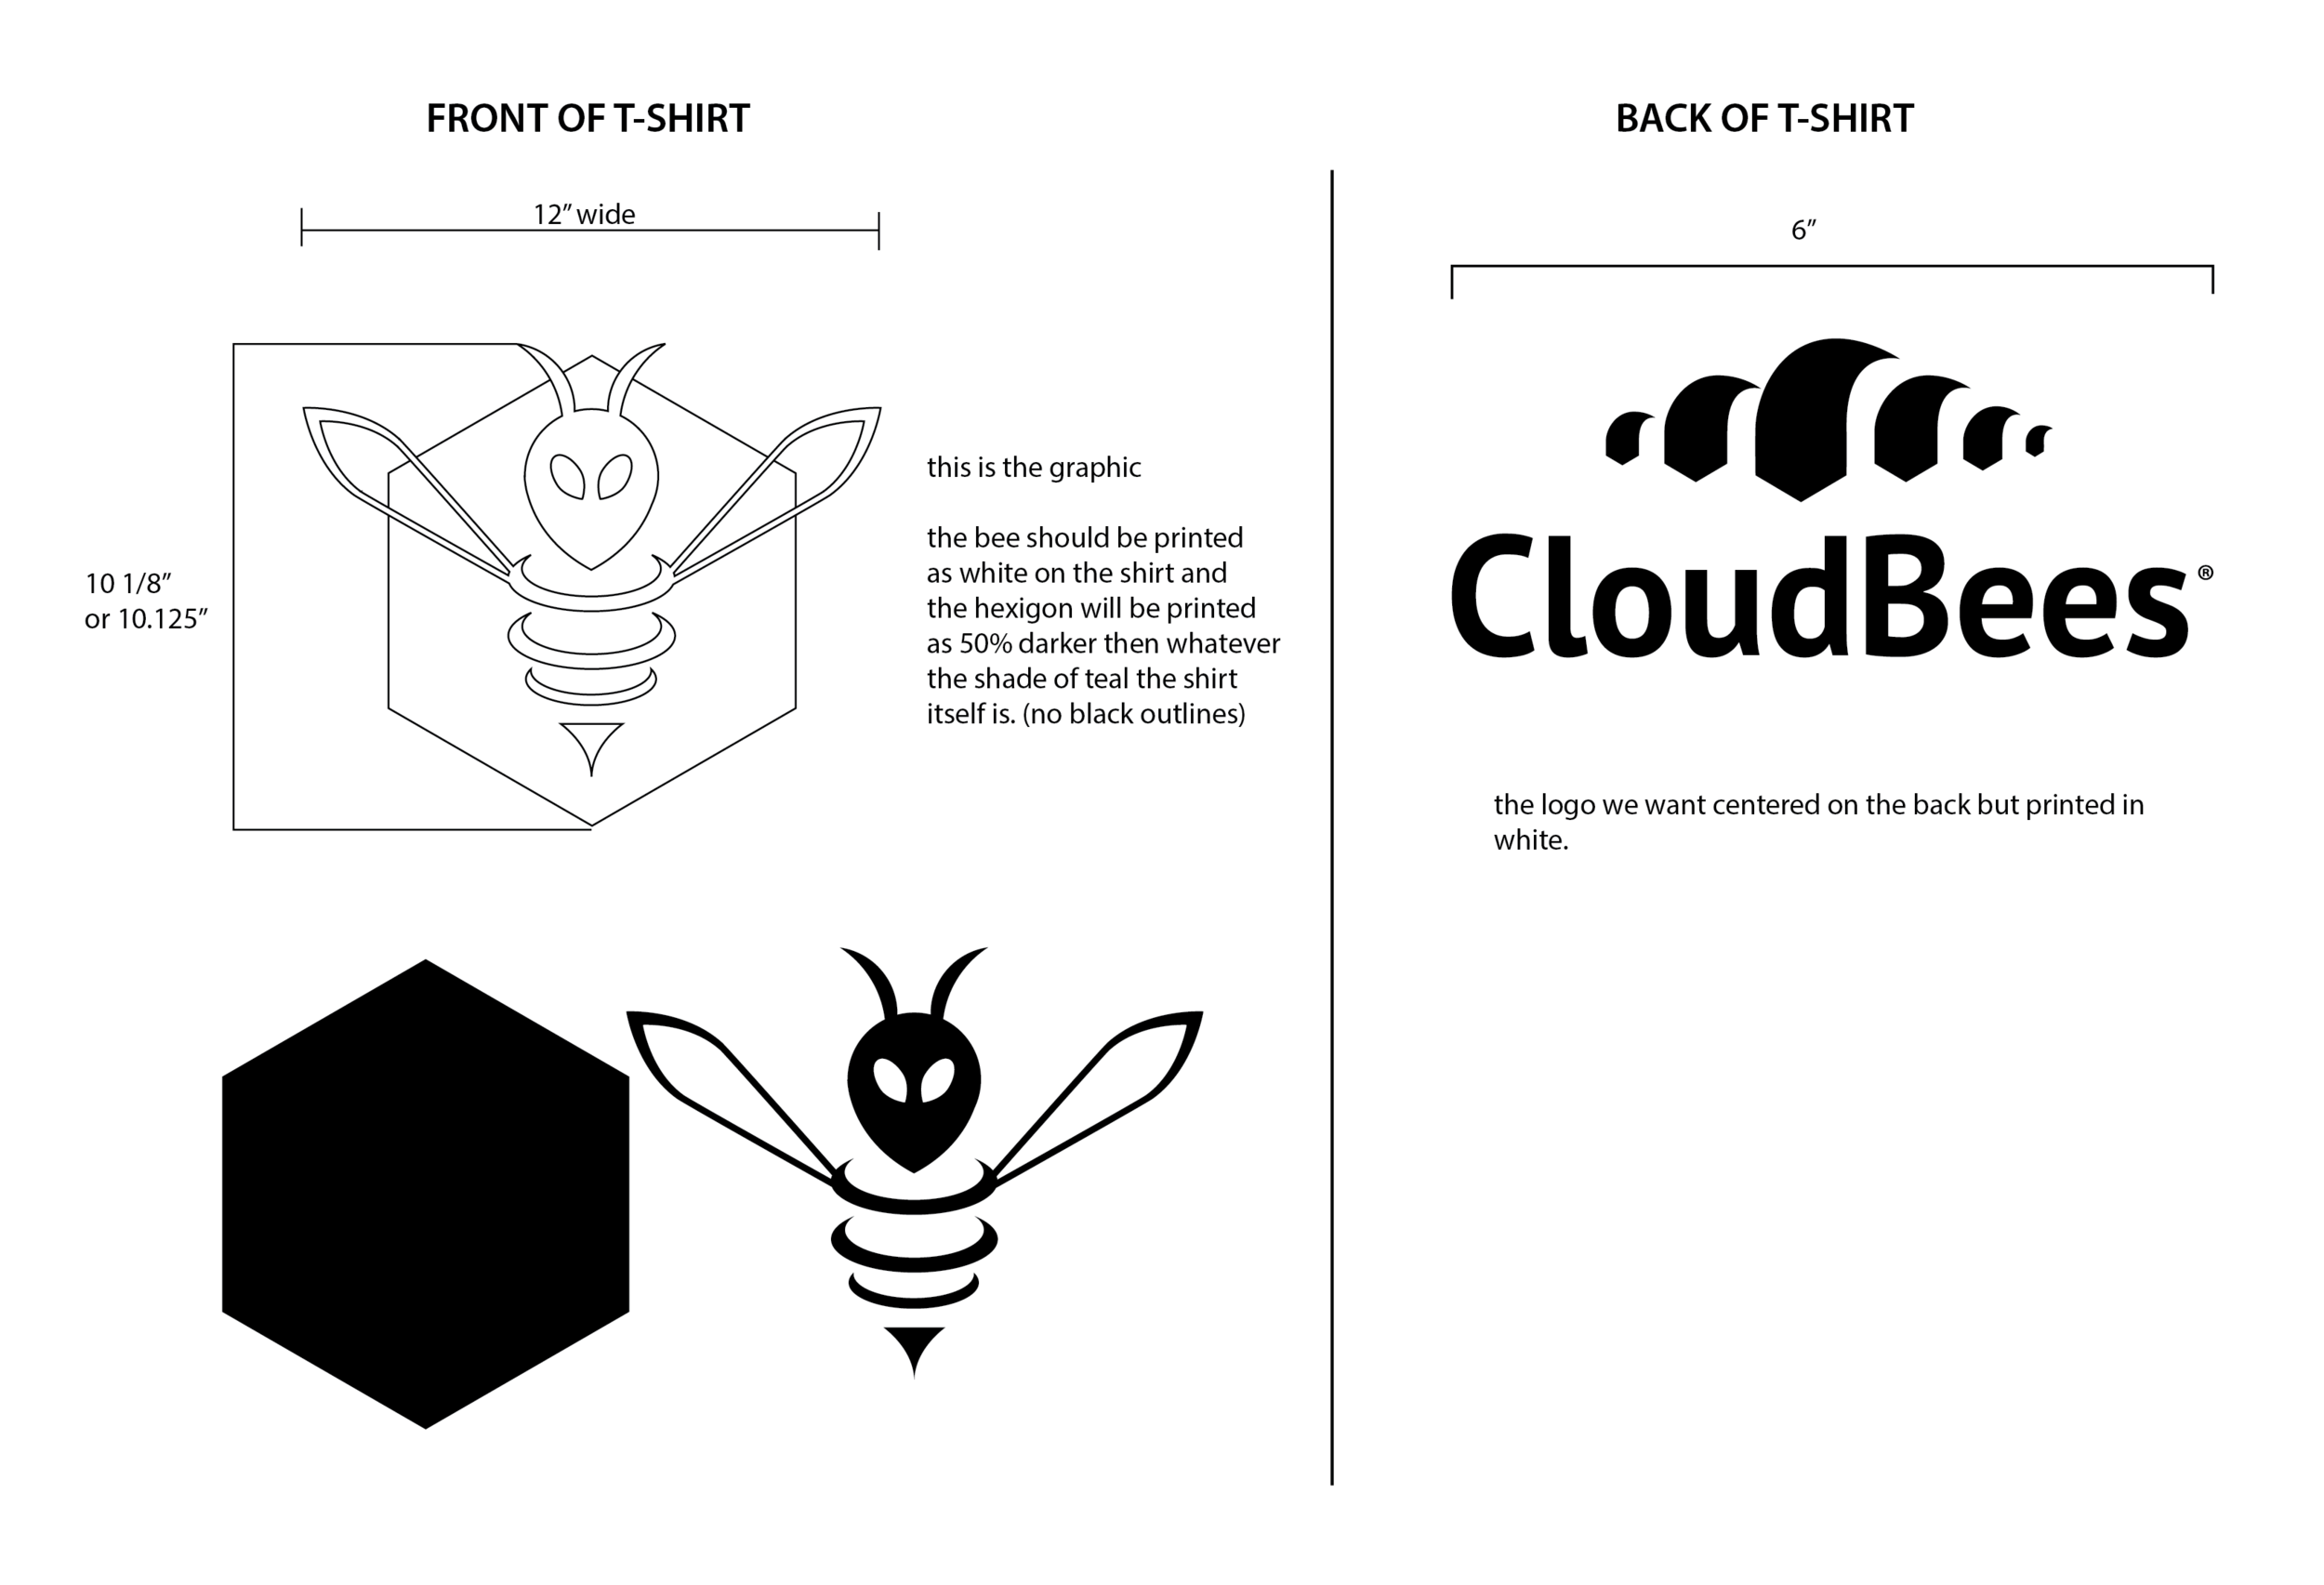 CloudbeesFront_Back_TshirtGraphic.png